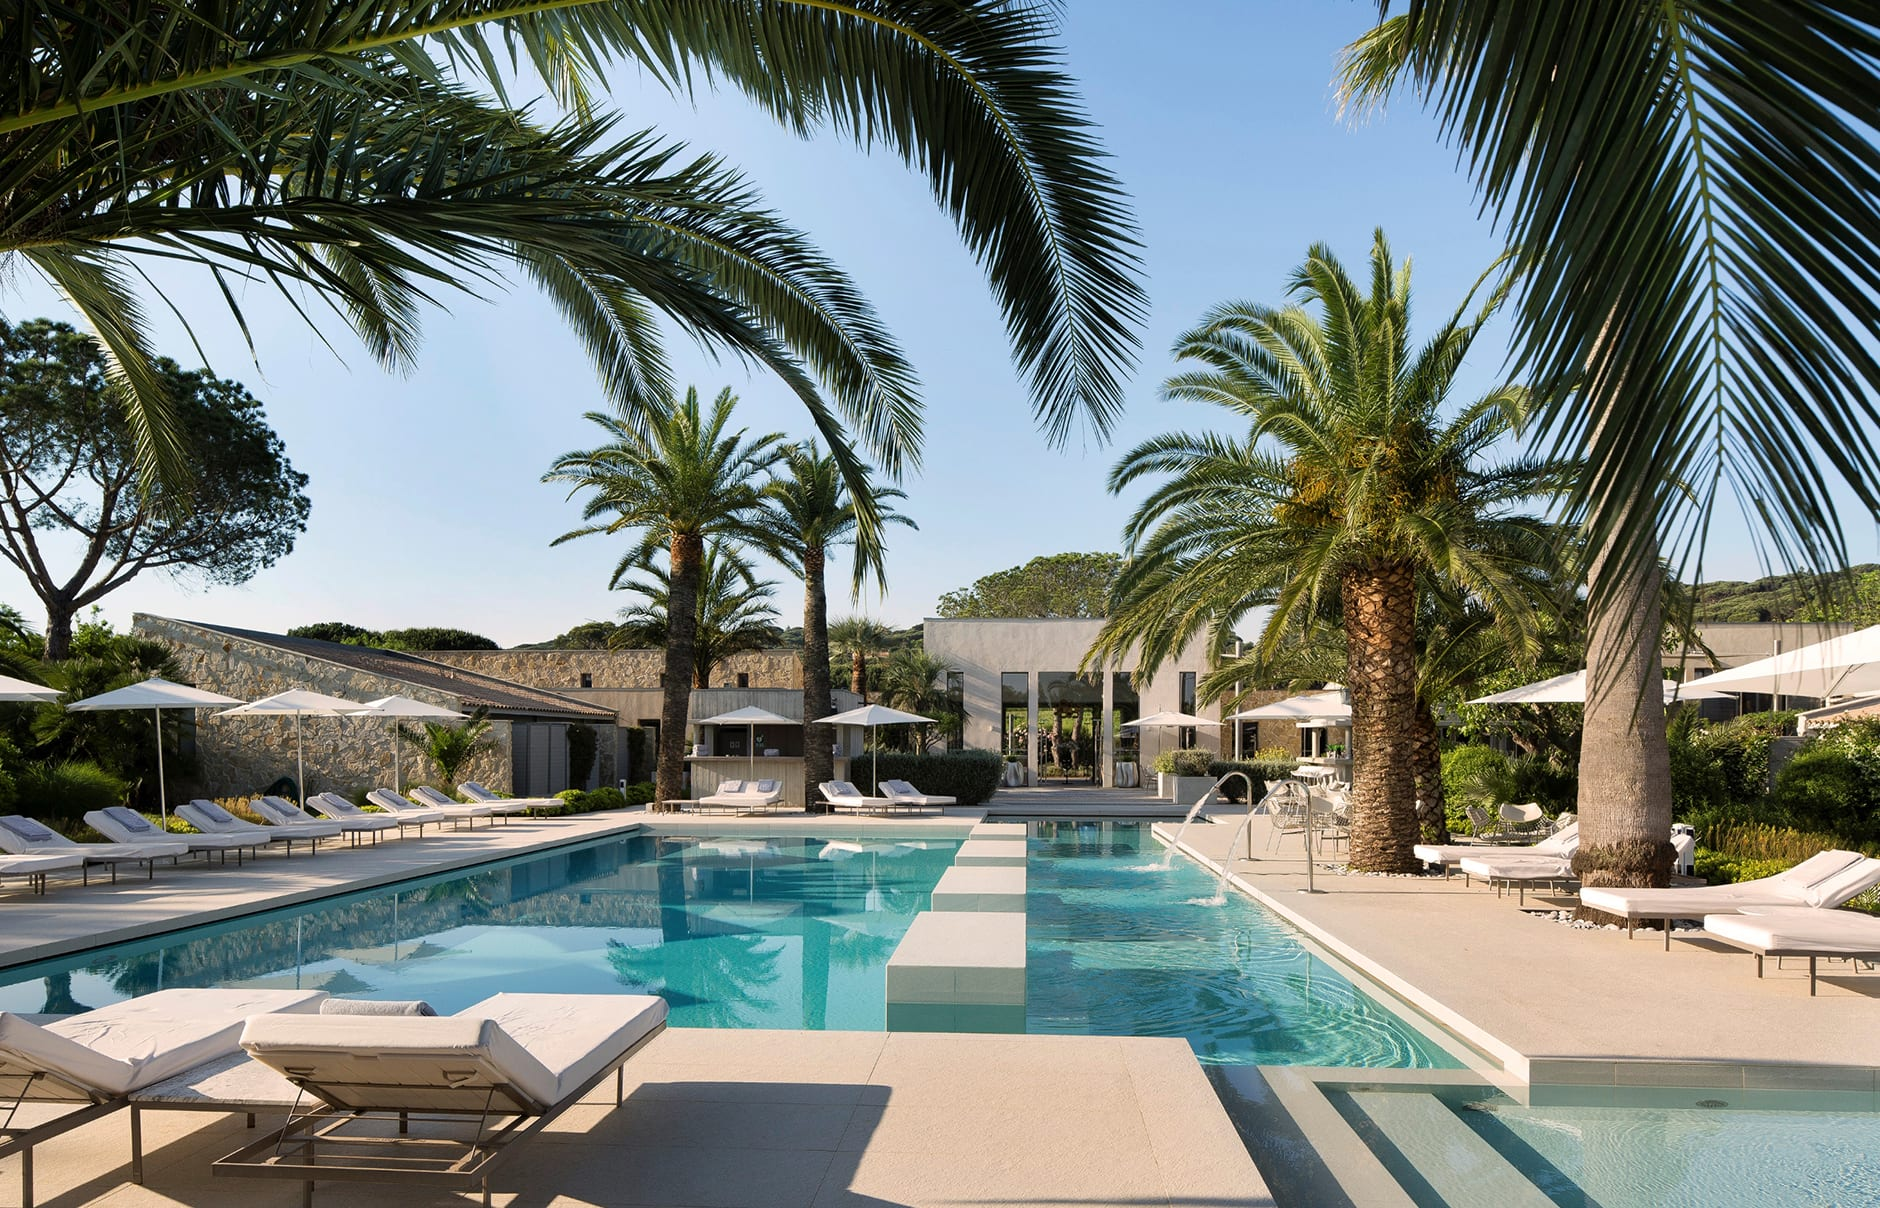 Hotel Sezz Saint Tropez, France. Hotel Review. Photo © Hotel Sezz